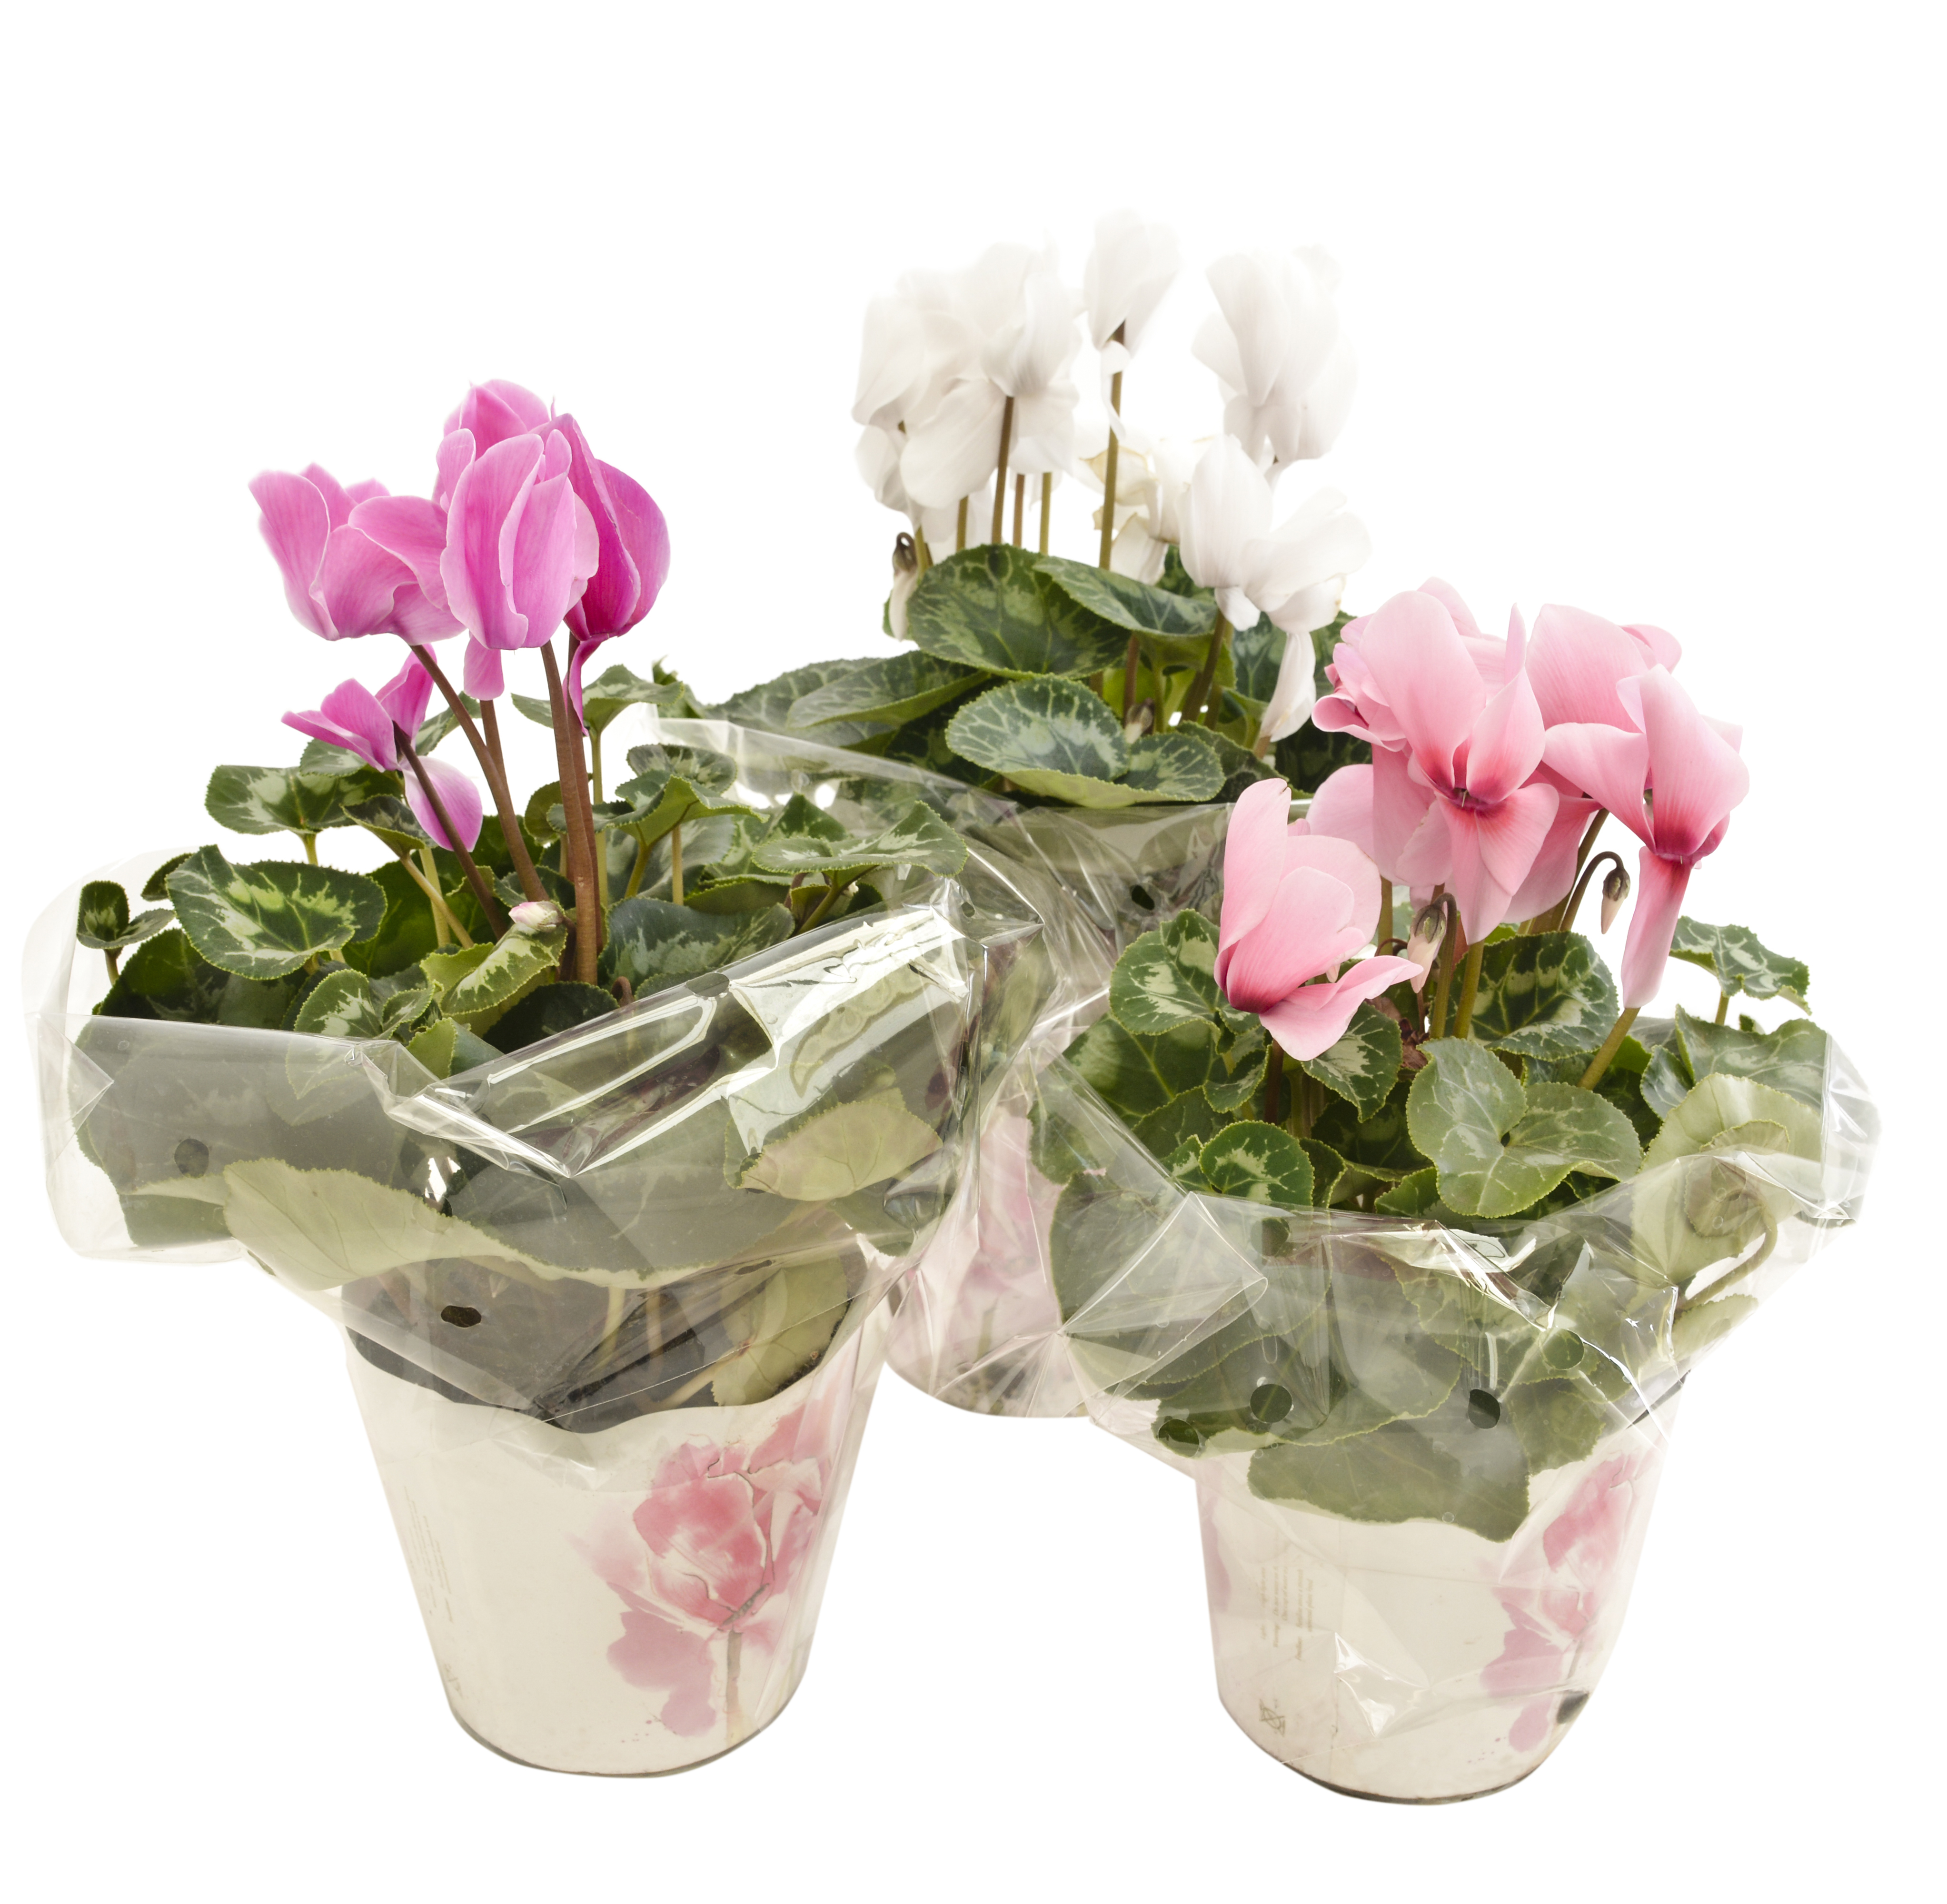 cyclamen lifestyle home garden nursery and plant shop johannesburg gauteng